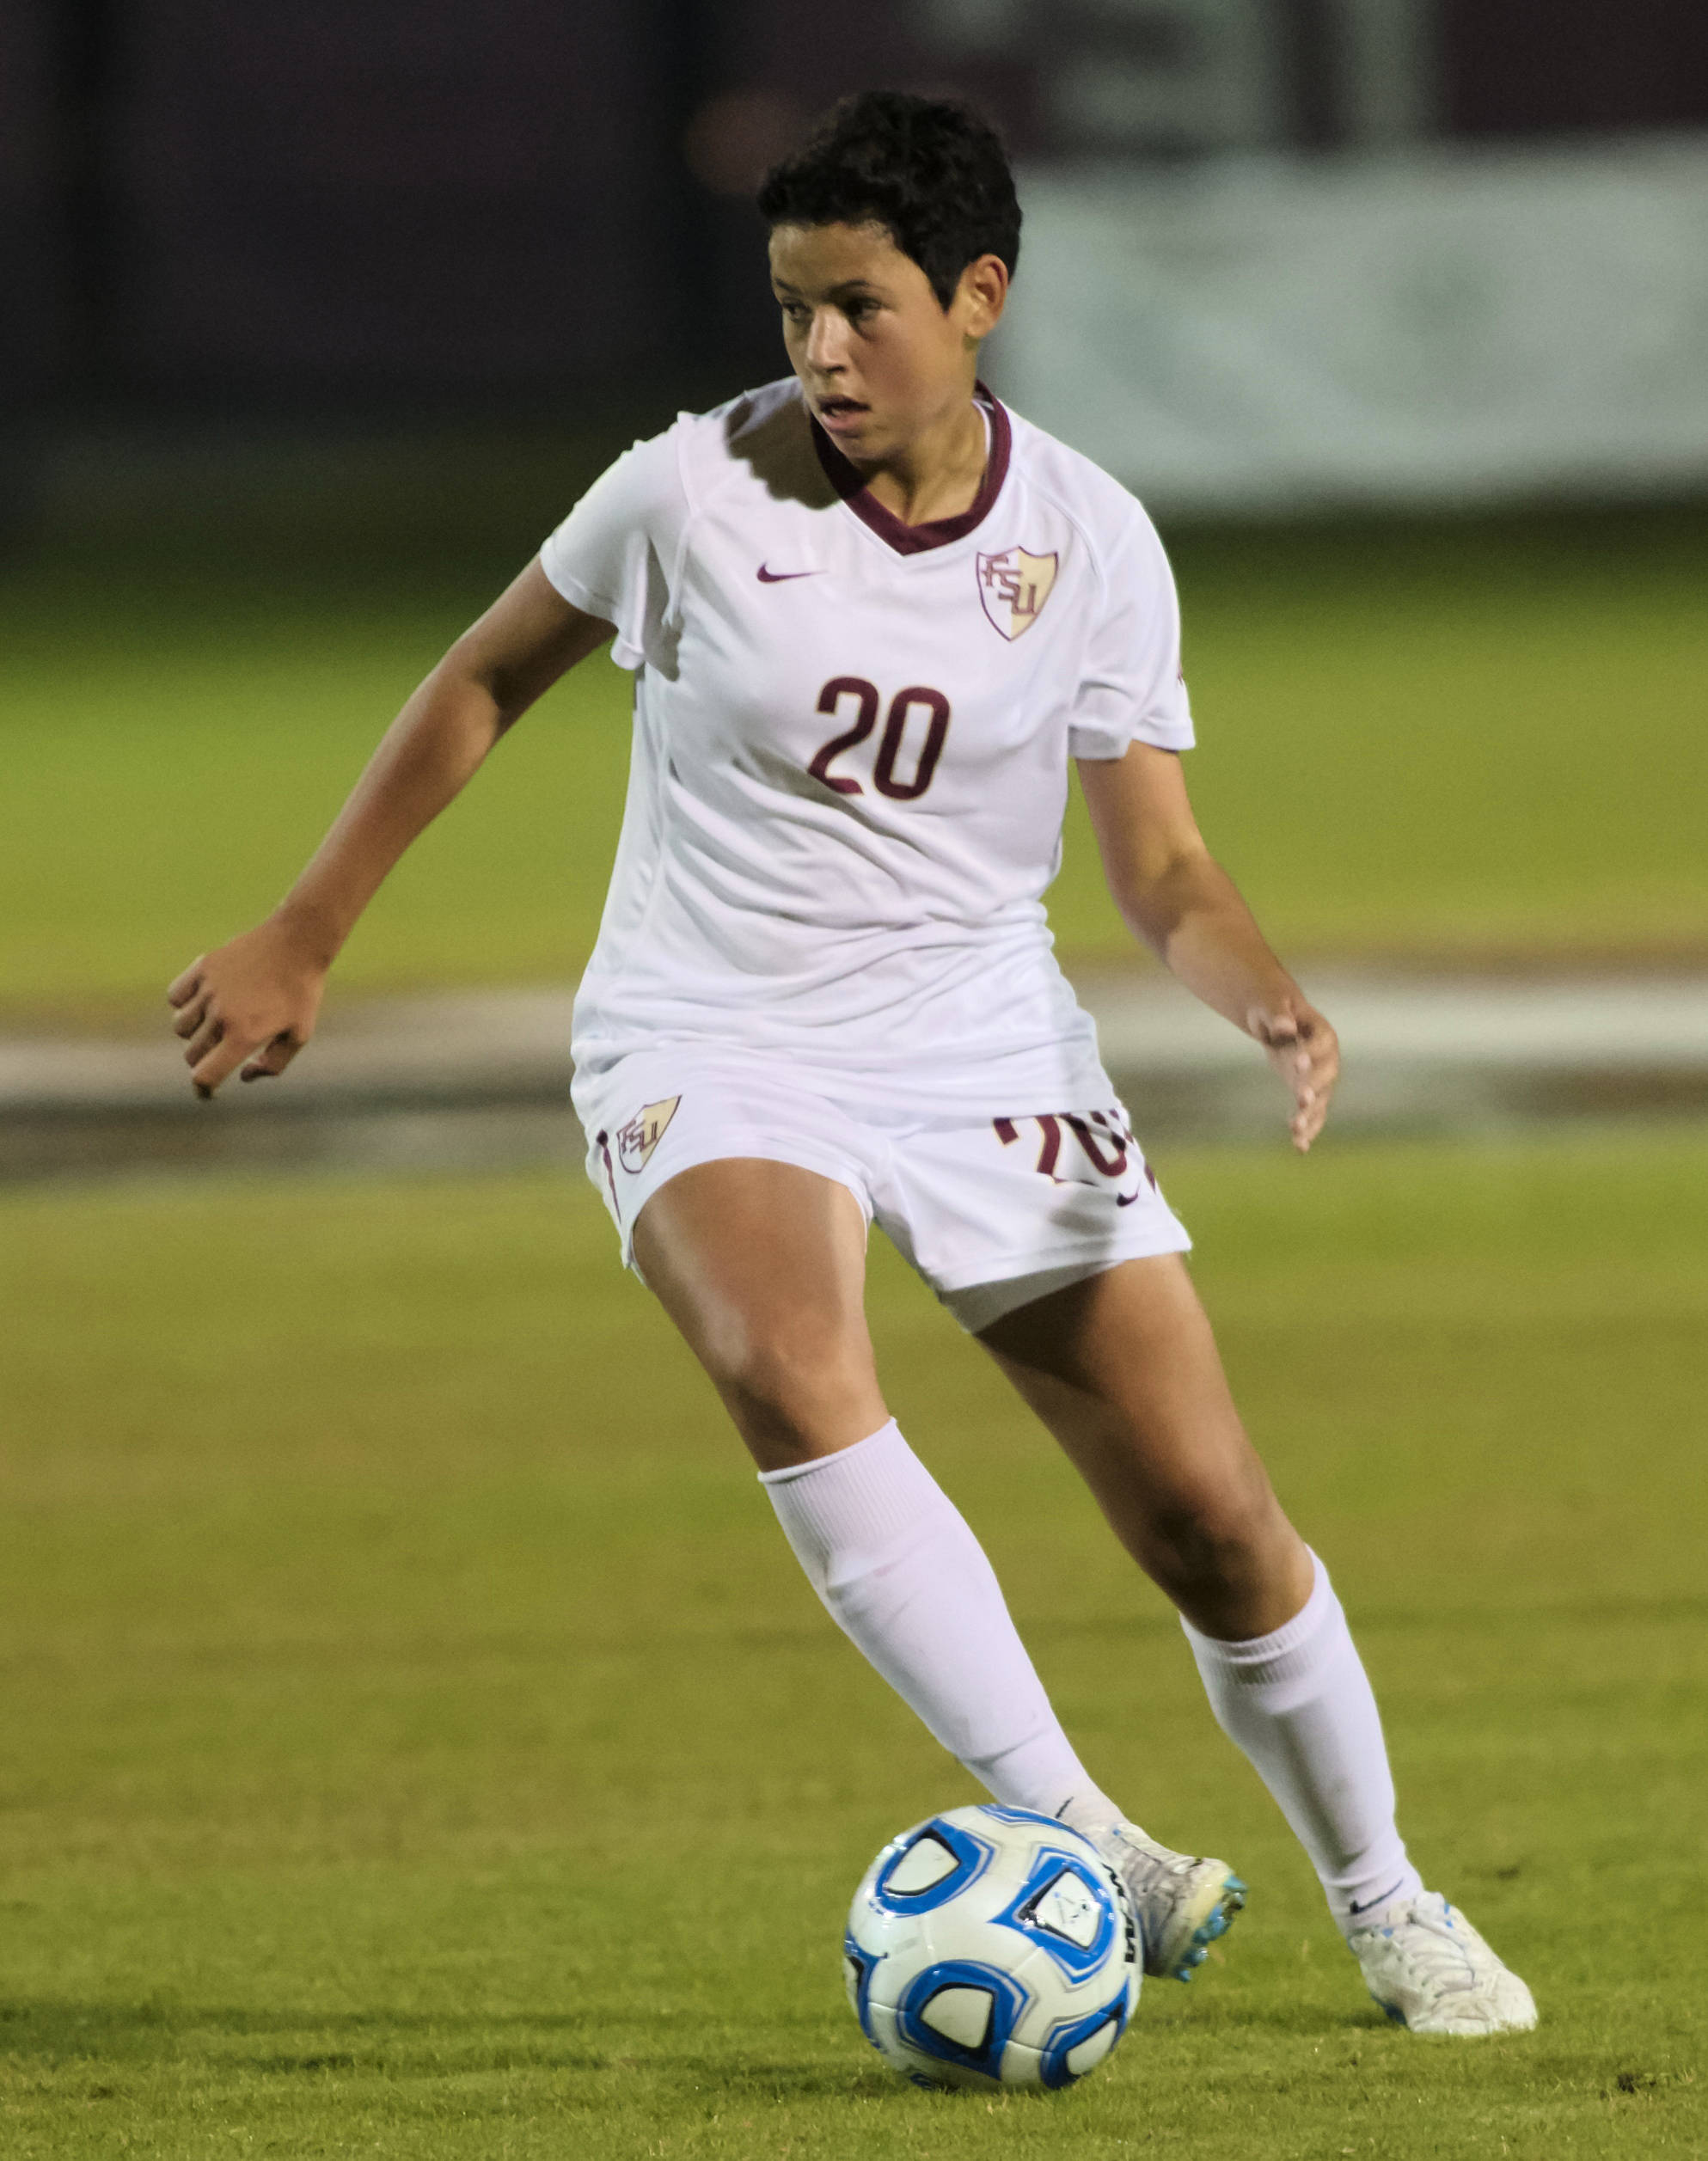 Nora Kervroedan (20), FSU vs MVSU, 11/09/12. (Photo by Steve Musco)